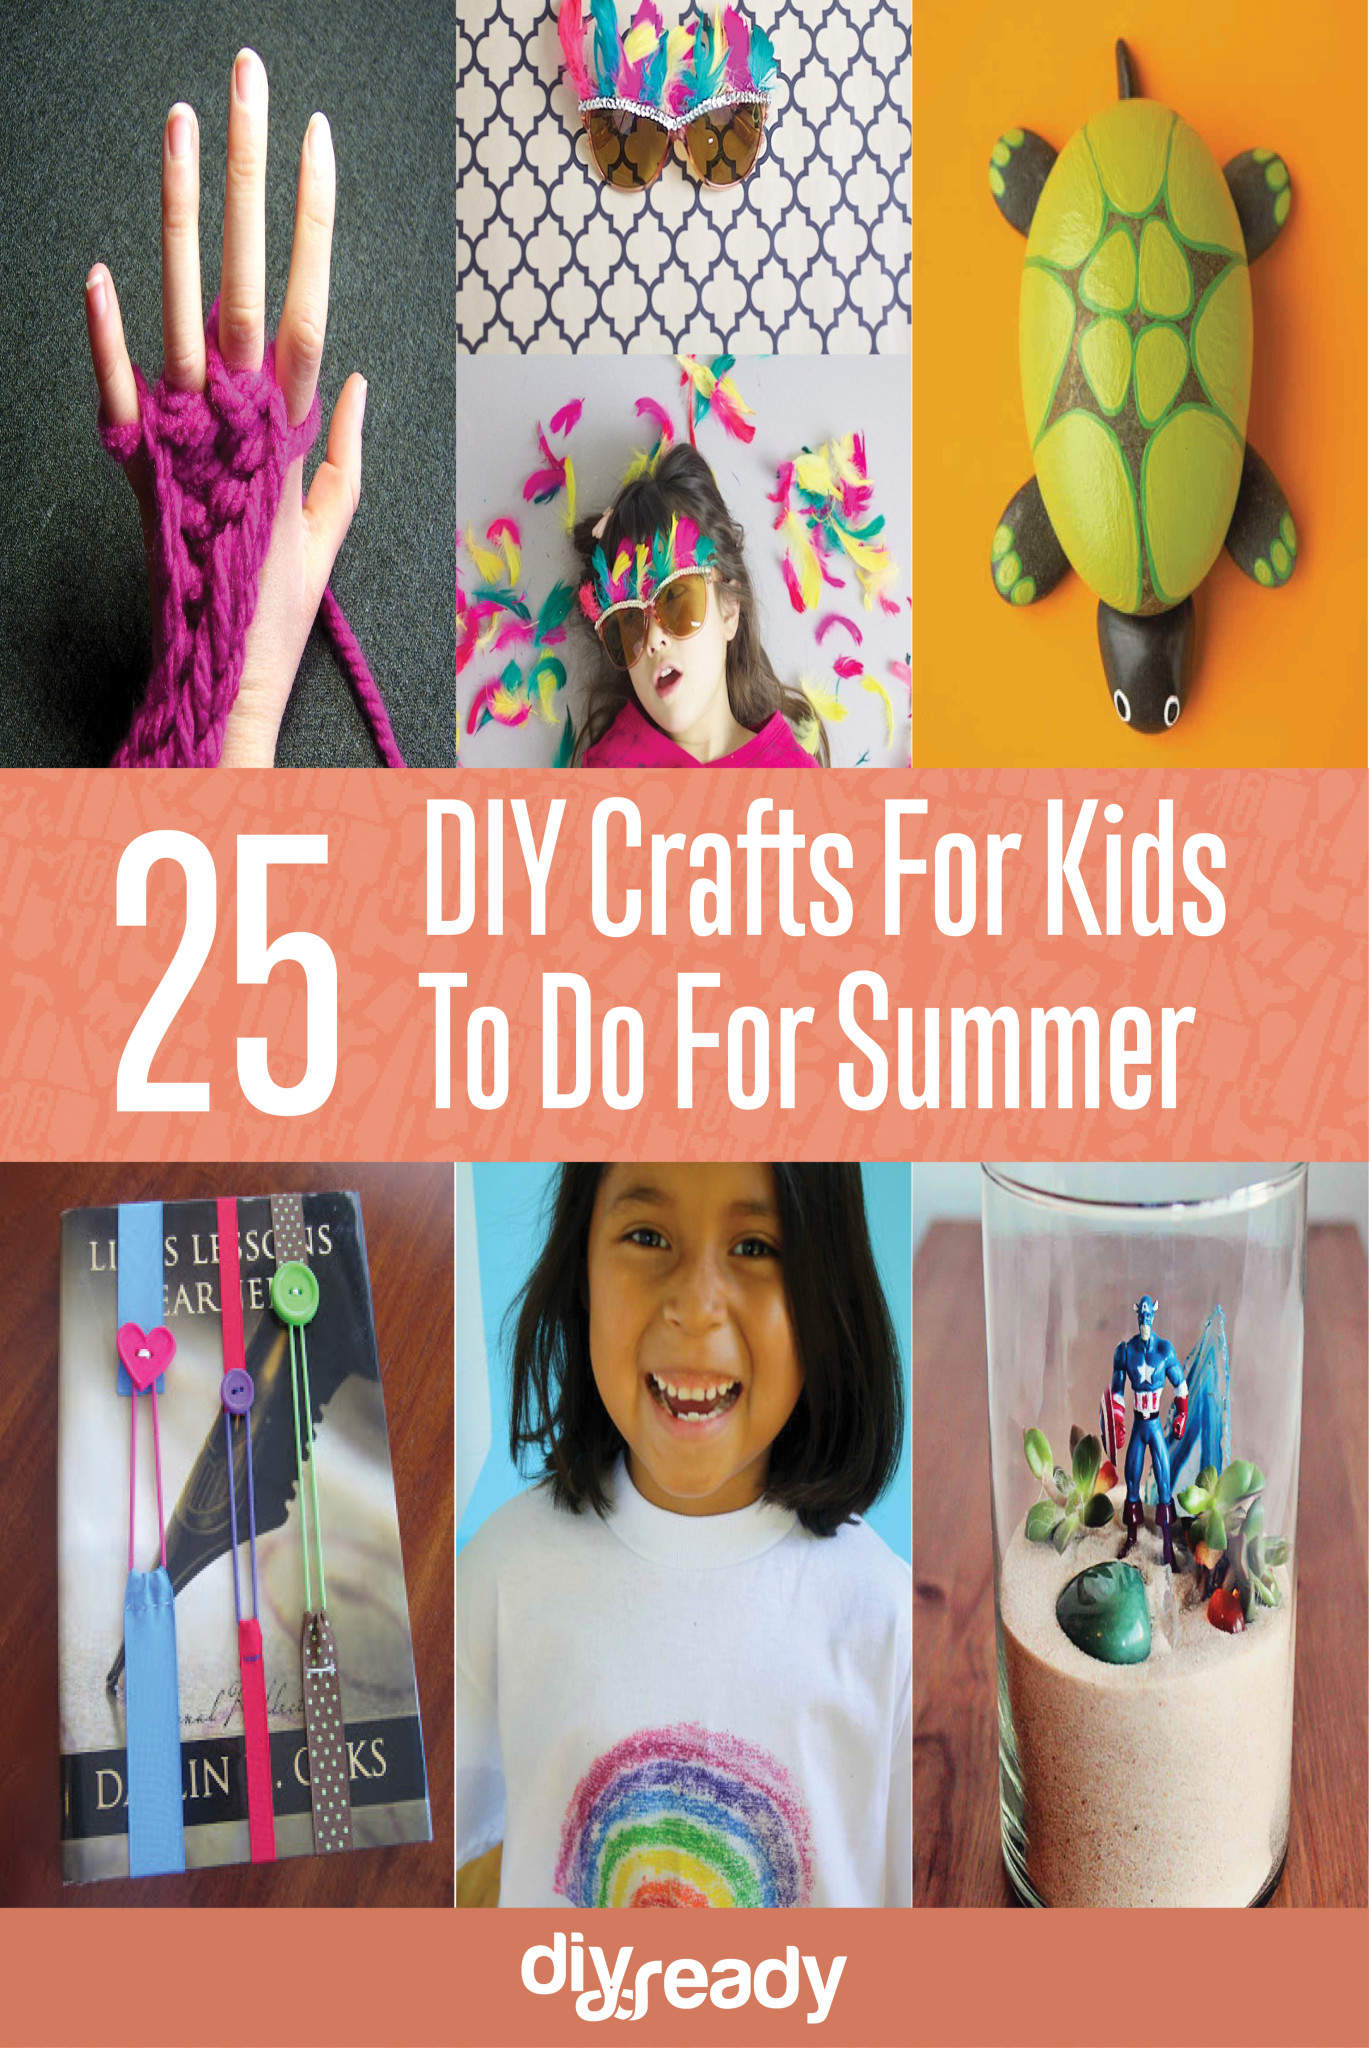 25 DIY Crafts for Kids To Do For Summer